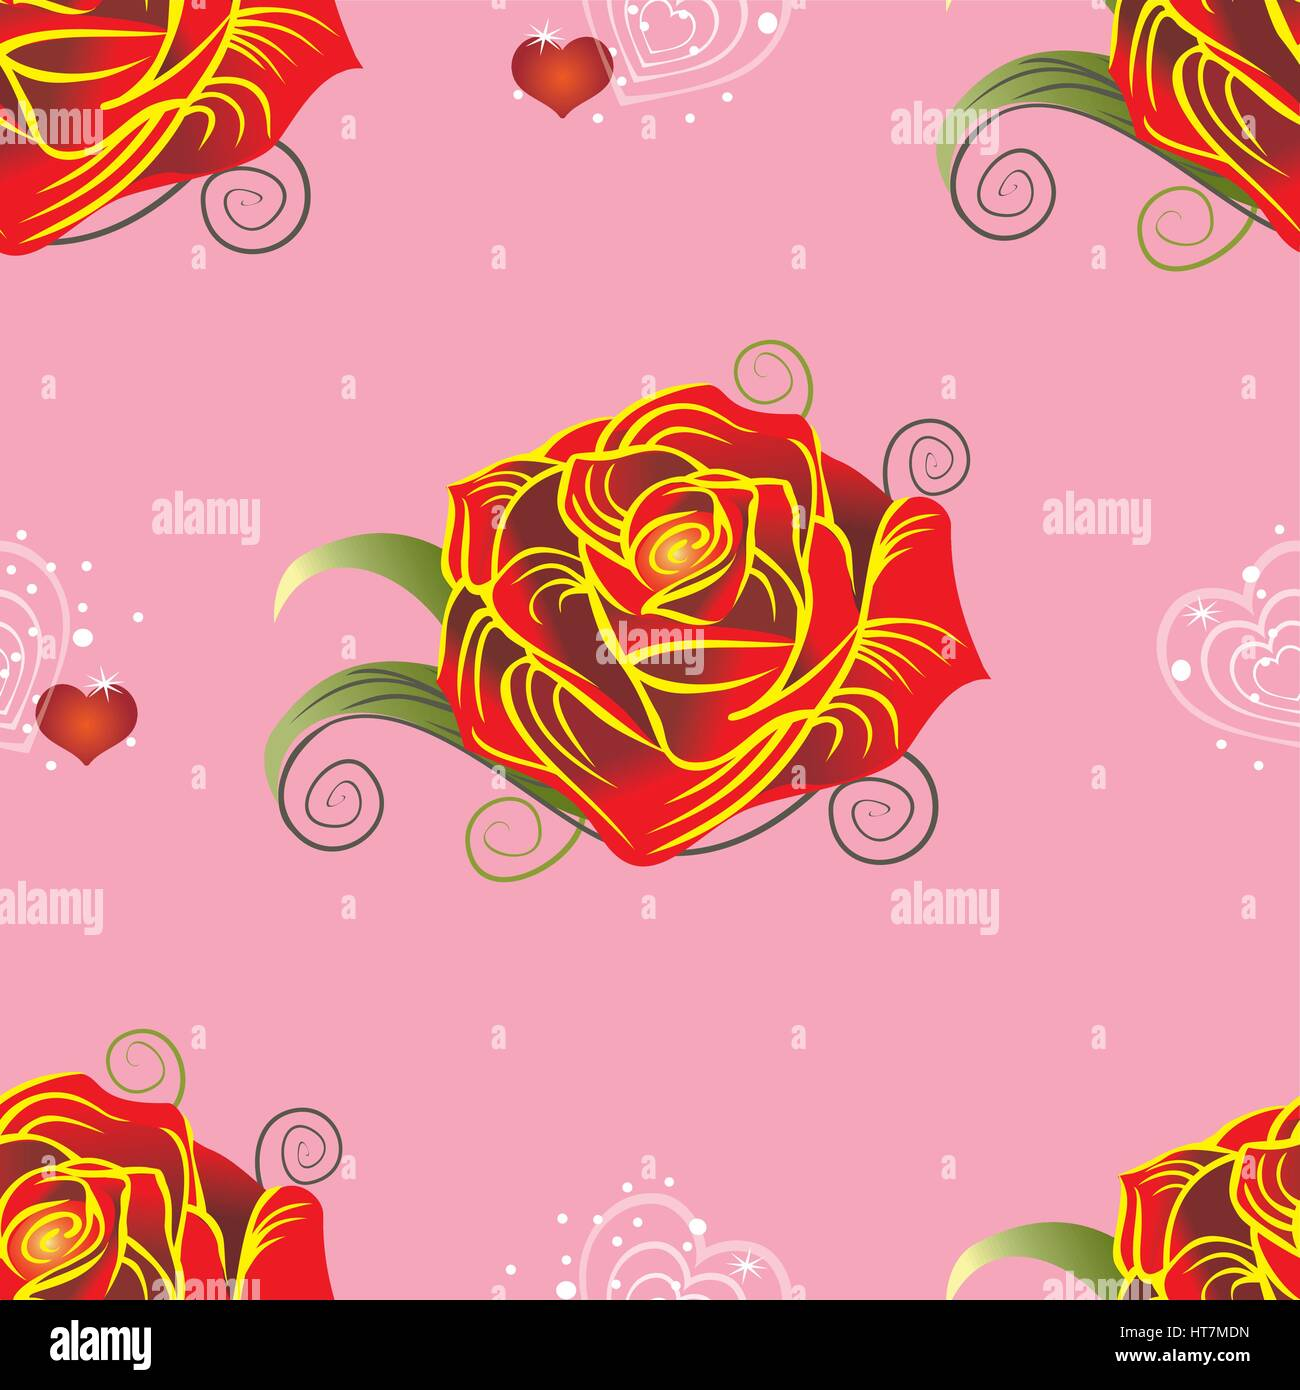 Background image mdn - Seamless Vector Pattern With Red Rose And Hearts On Pink Background